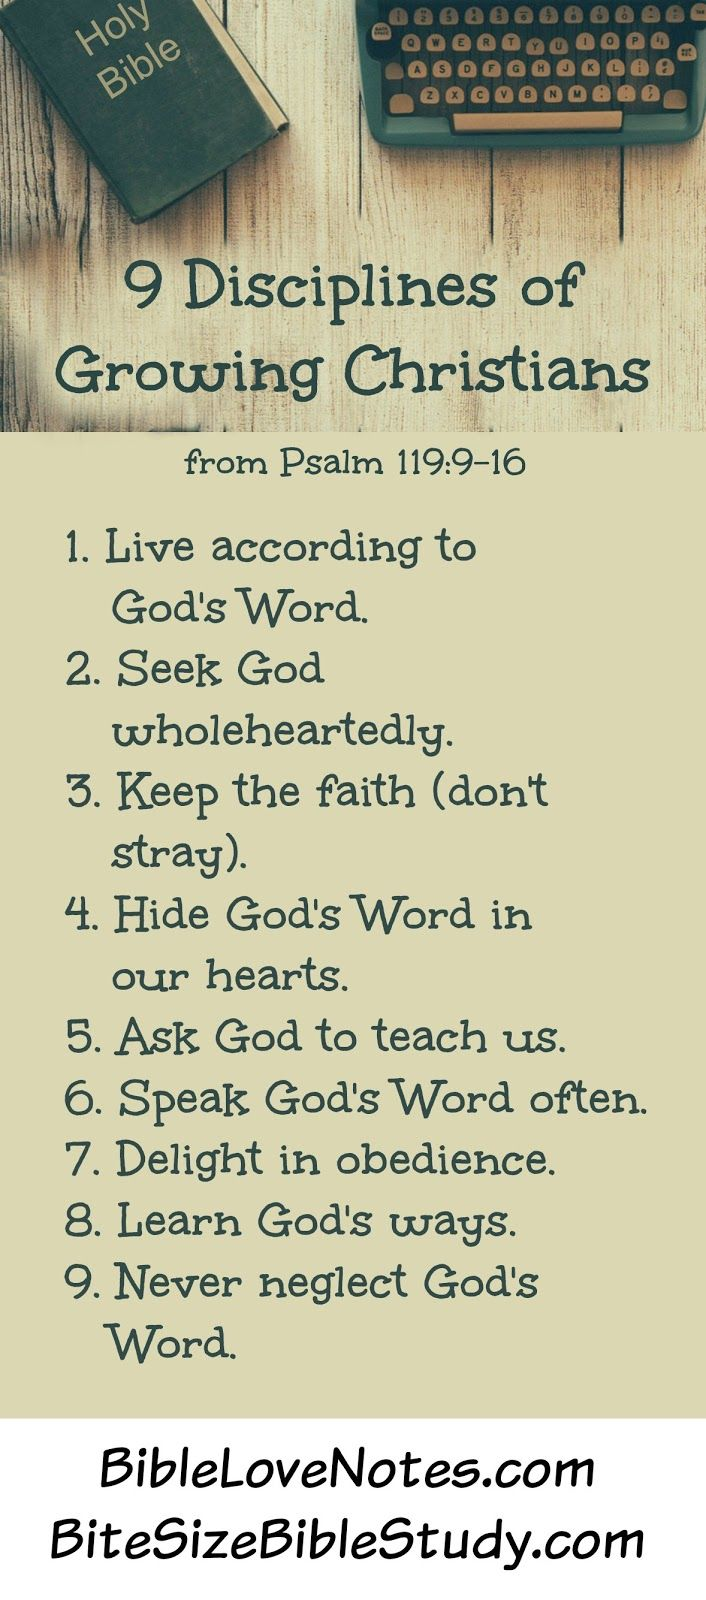 9 Disciplines of Growing Christians - from Psalm 119:12-16